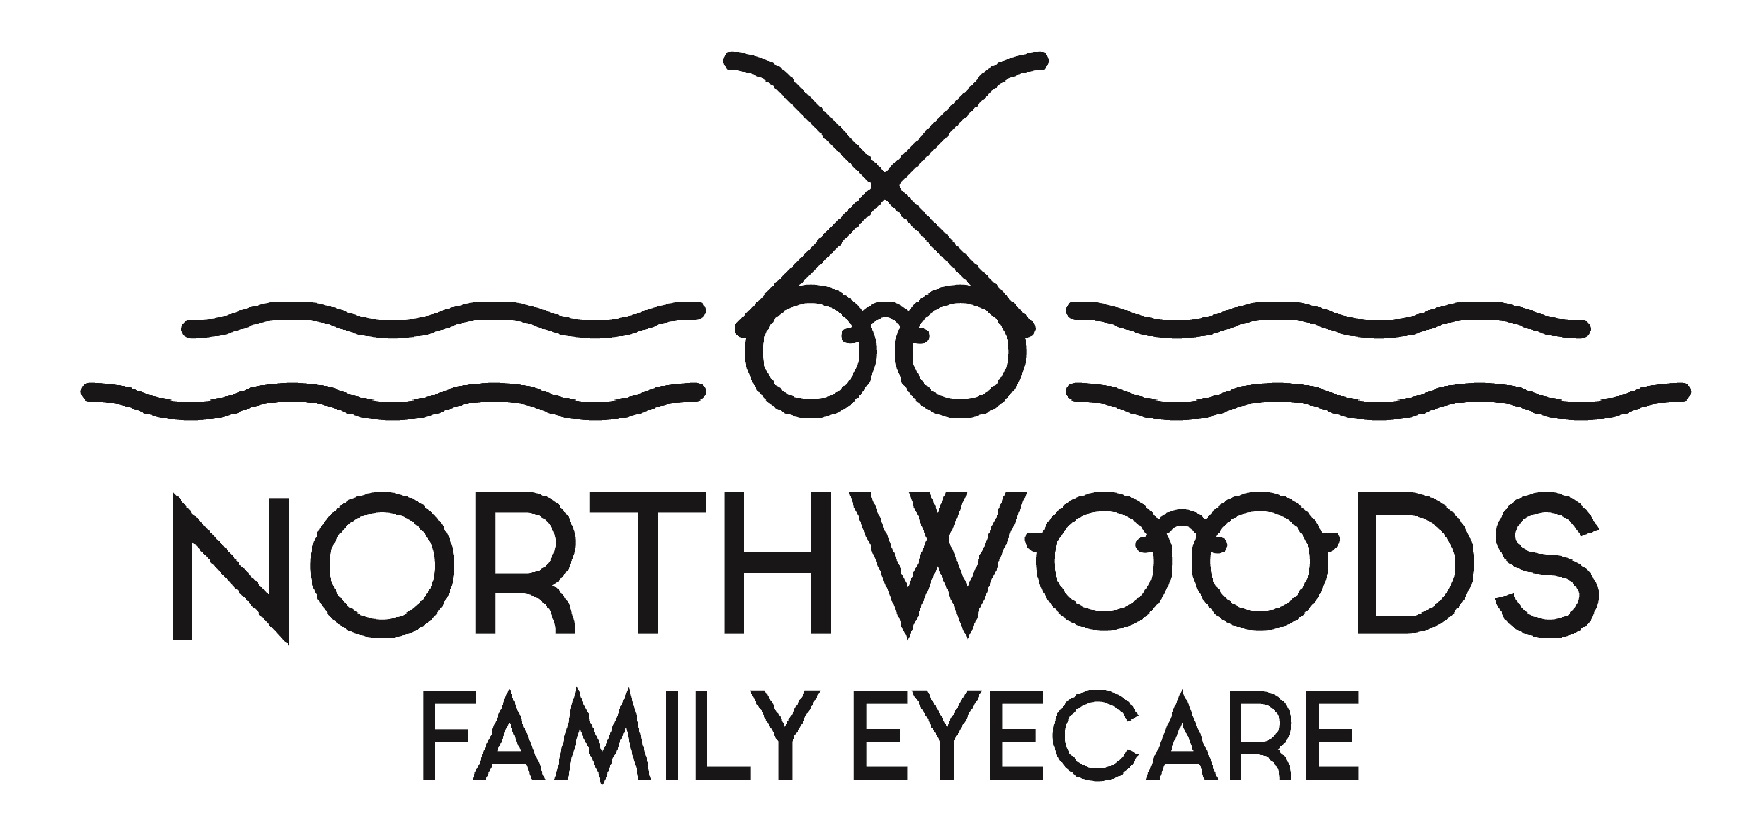 Northwoods Family Eyecare Logo